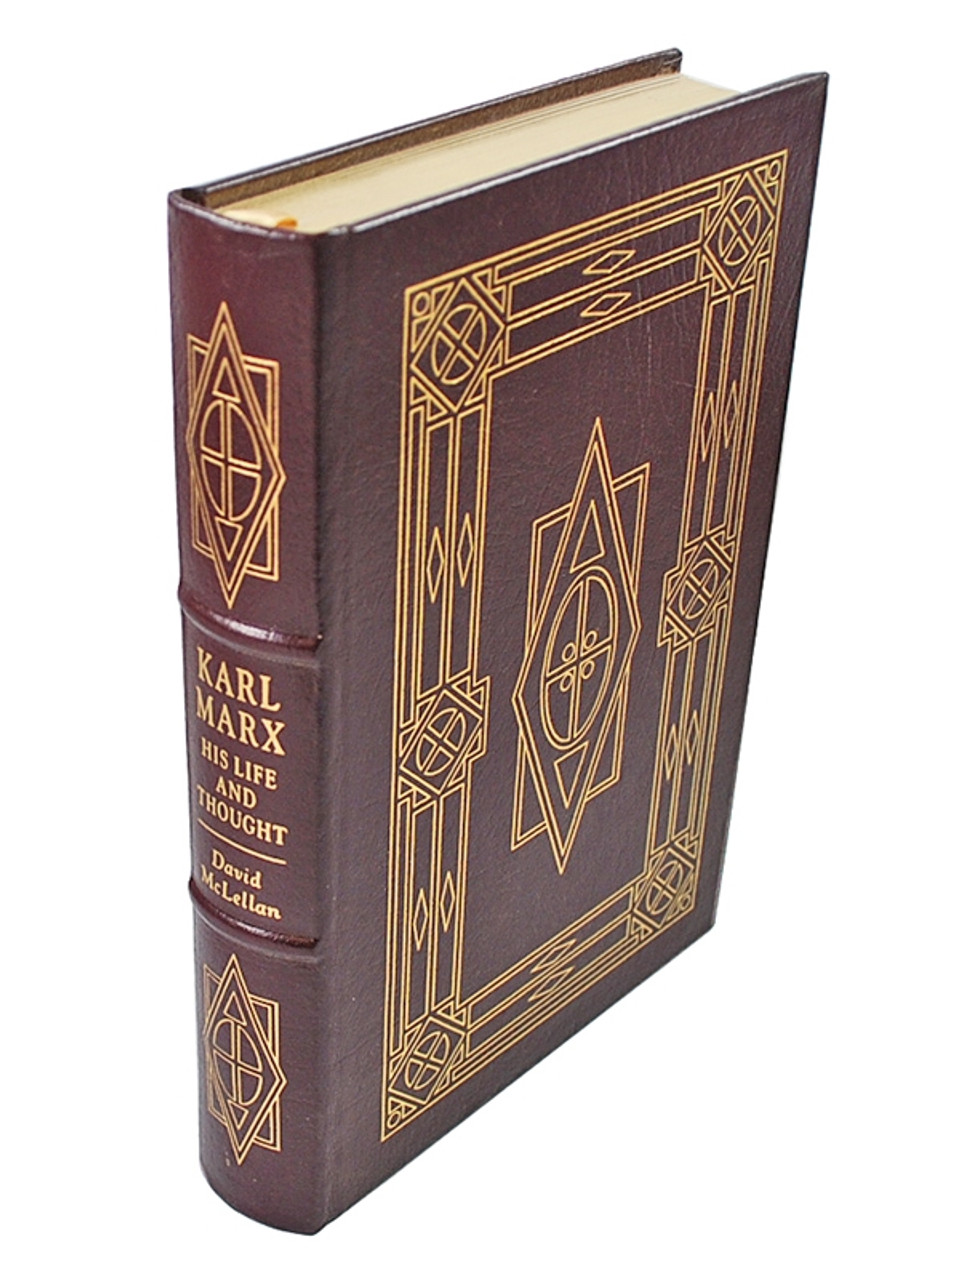 """David McLellan """"Karl Marx: His Life And Thought"""" Leather Bound Collector's Edition"""